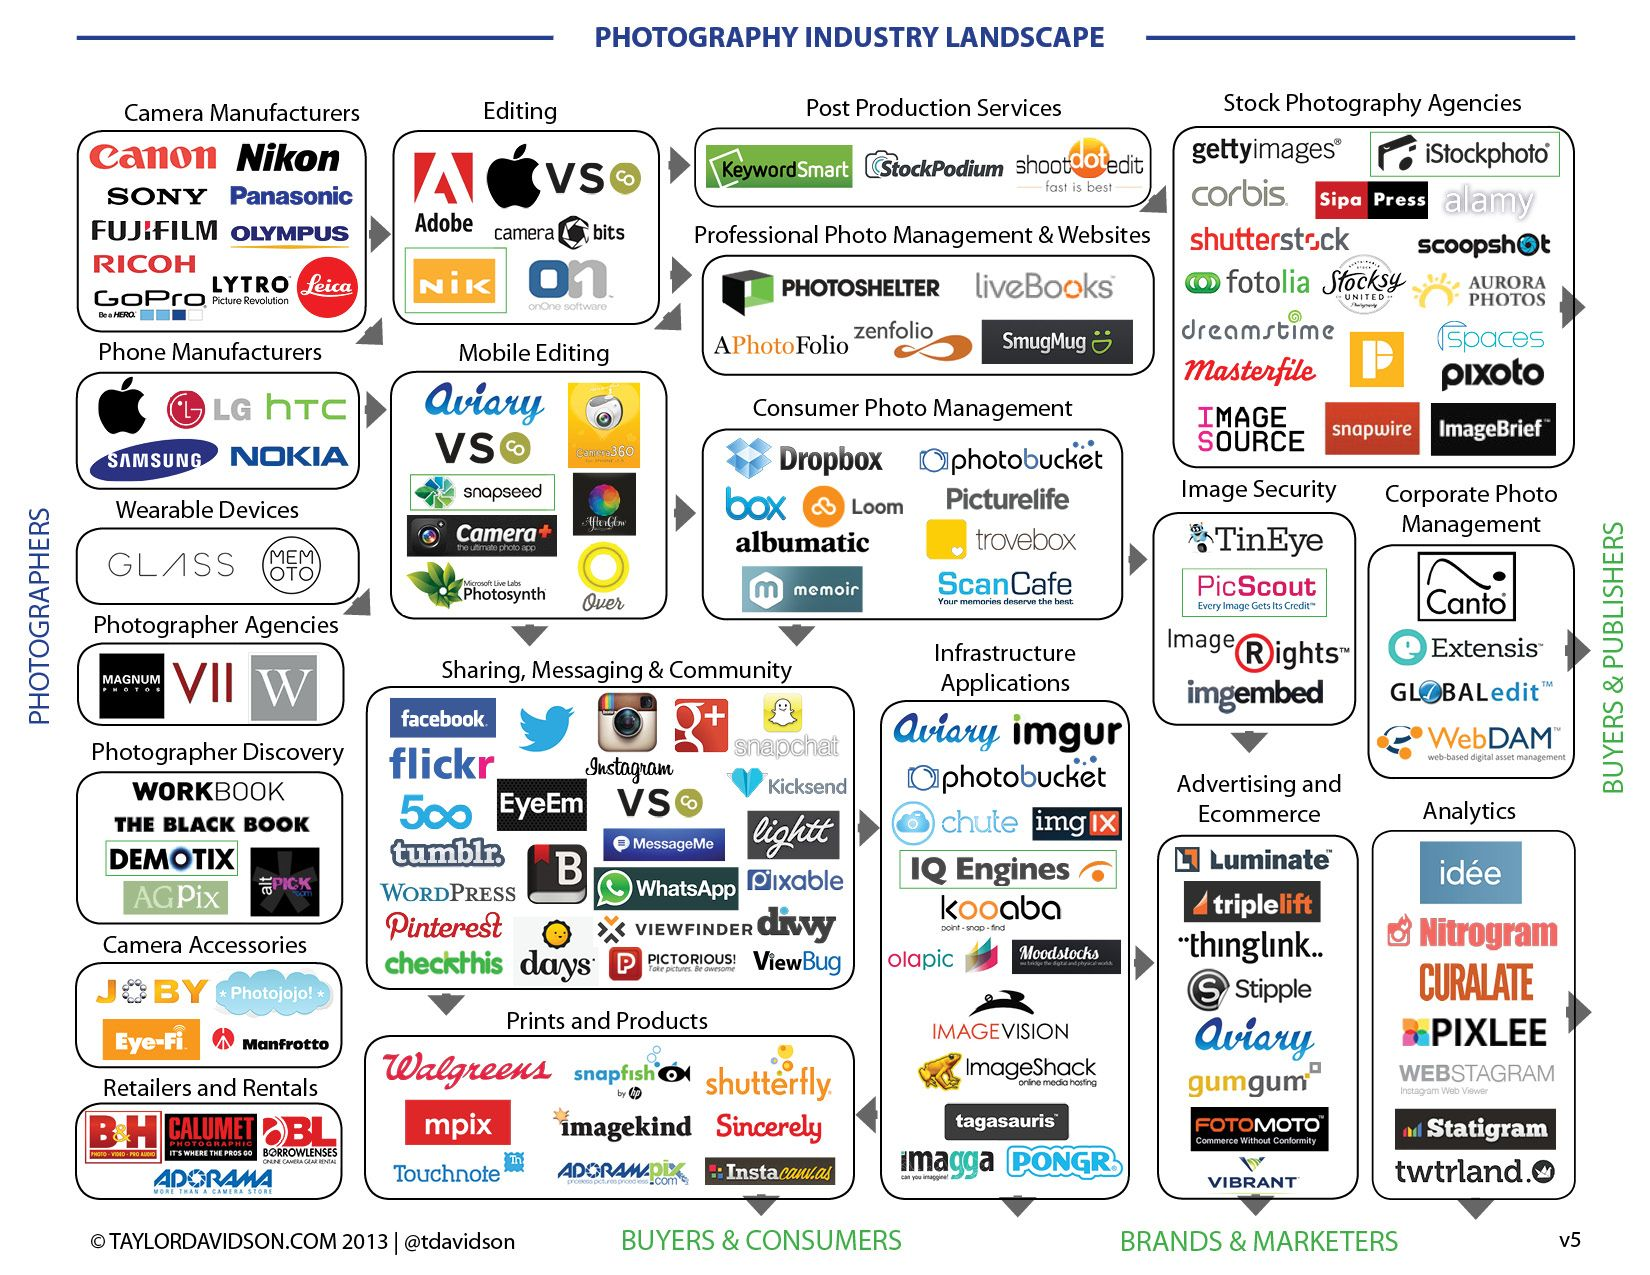 The Photography Industry Landscape  Visualizations